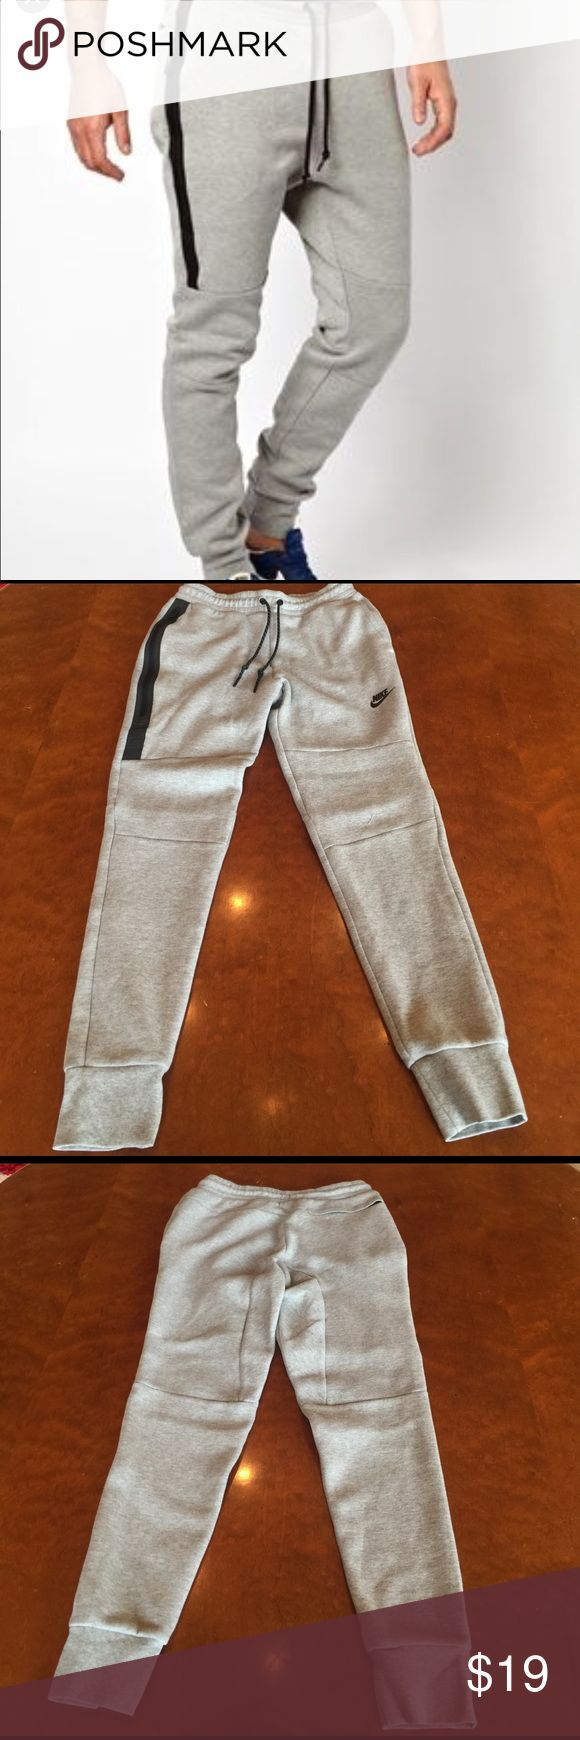 """Mens Nike Tech Fleece Jogger Size Small Nike Mens Tech Fleece Jogger Size Small. Awesome jogger!Worn once. 1/2"""" tear around knee area otherwise perfect. Priced right. Nike Pants"""